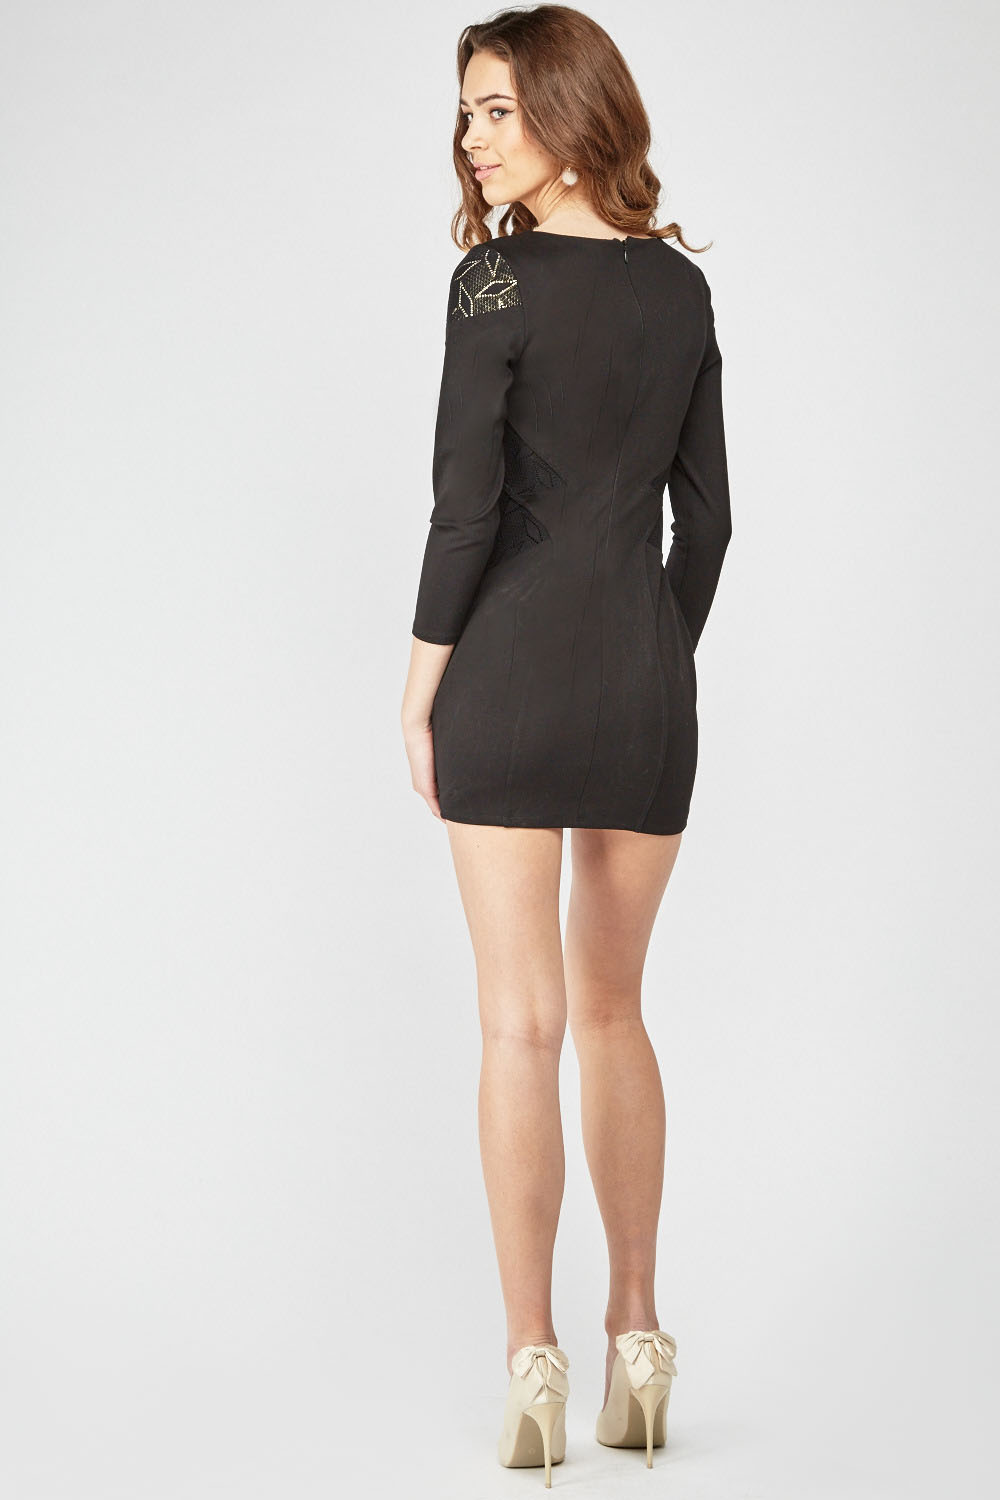 Ontario wedding bodycon dress cutting and stitching x ray montreal